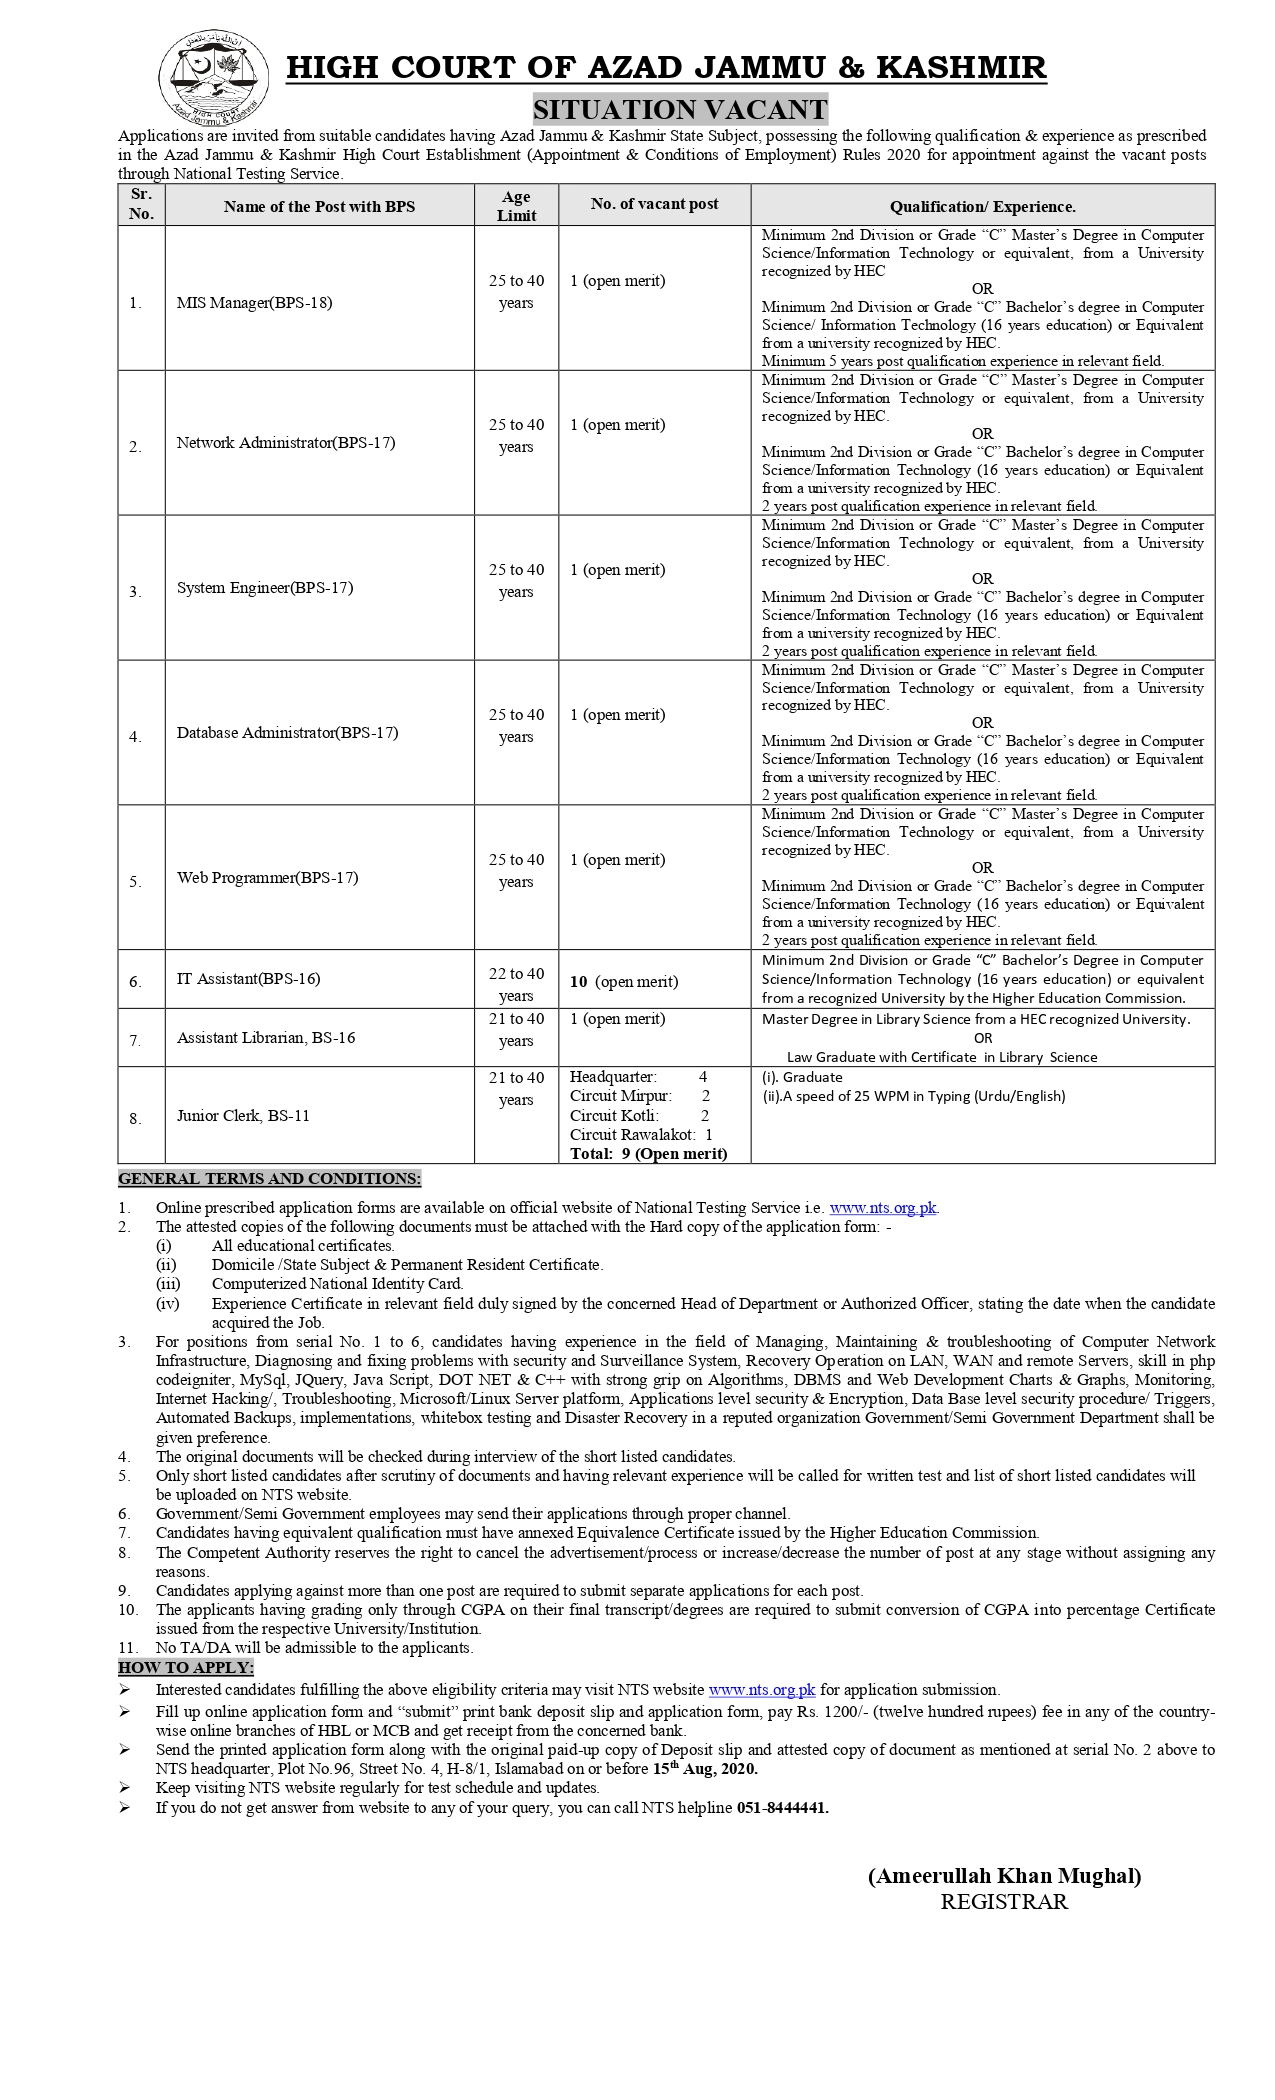 High Court Azad Jammu & Kashmir NTS Jobs 2020 Apply Online Application Form Roll No Slip